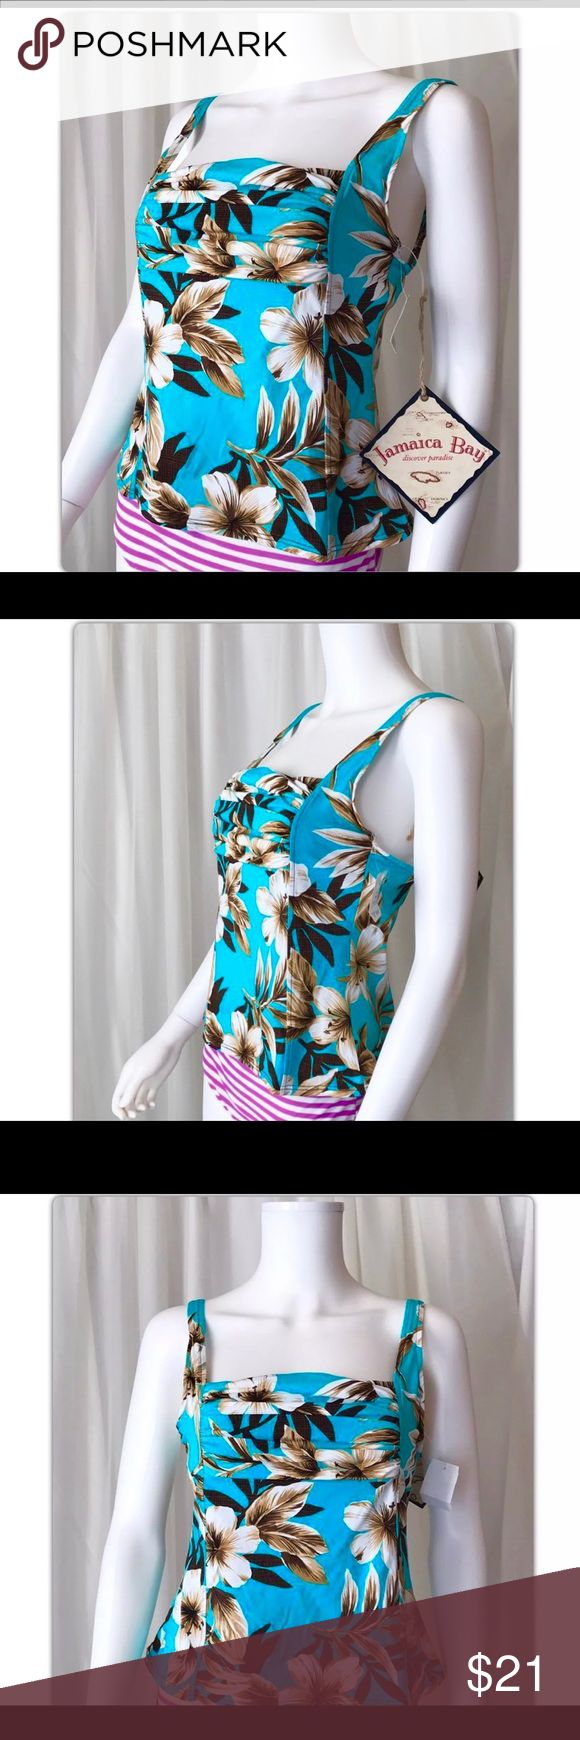 """Jamaica Bay Tankini Swim Top New with tags  Swept Away Size 14  To be confident this Top will fit you compare these measurements to a similar favorite in your closet:  Pit to pit measures 17"""" Length 21.5""""  I ship Monday through Saturday weather permitting. If you have a moment please look at my other items. Thank you. Jamaica Bay Swim"""